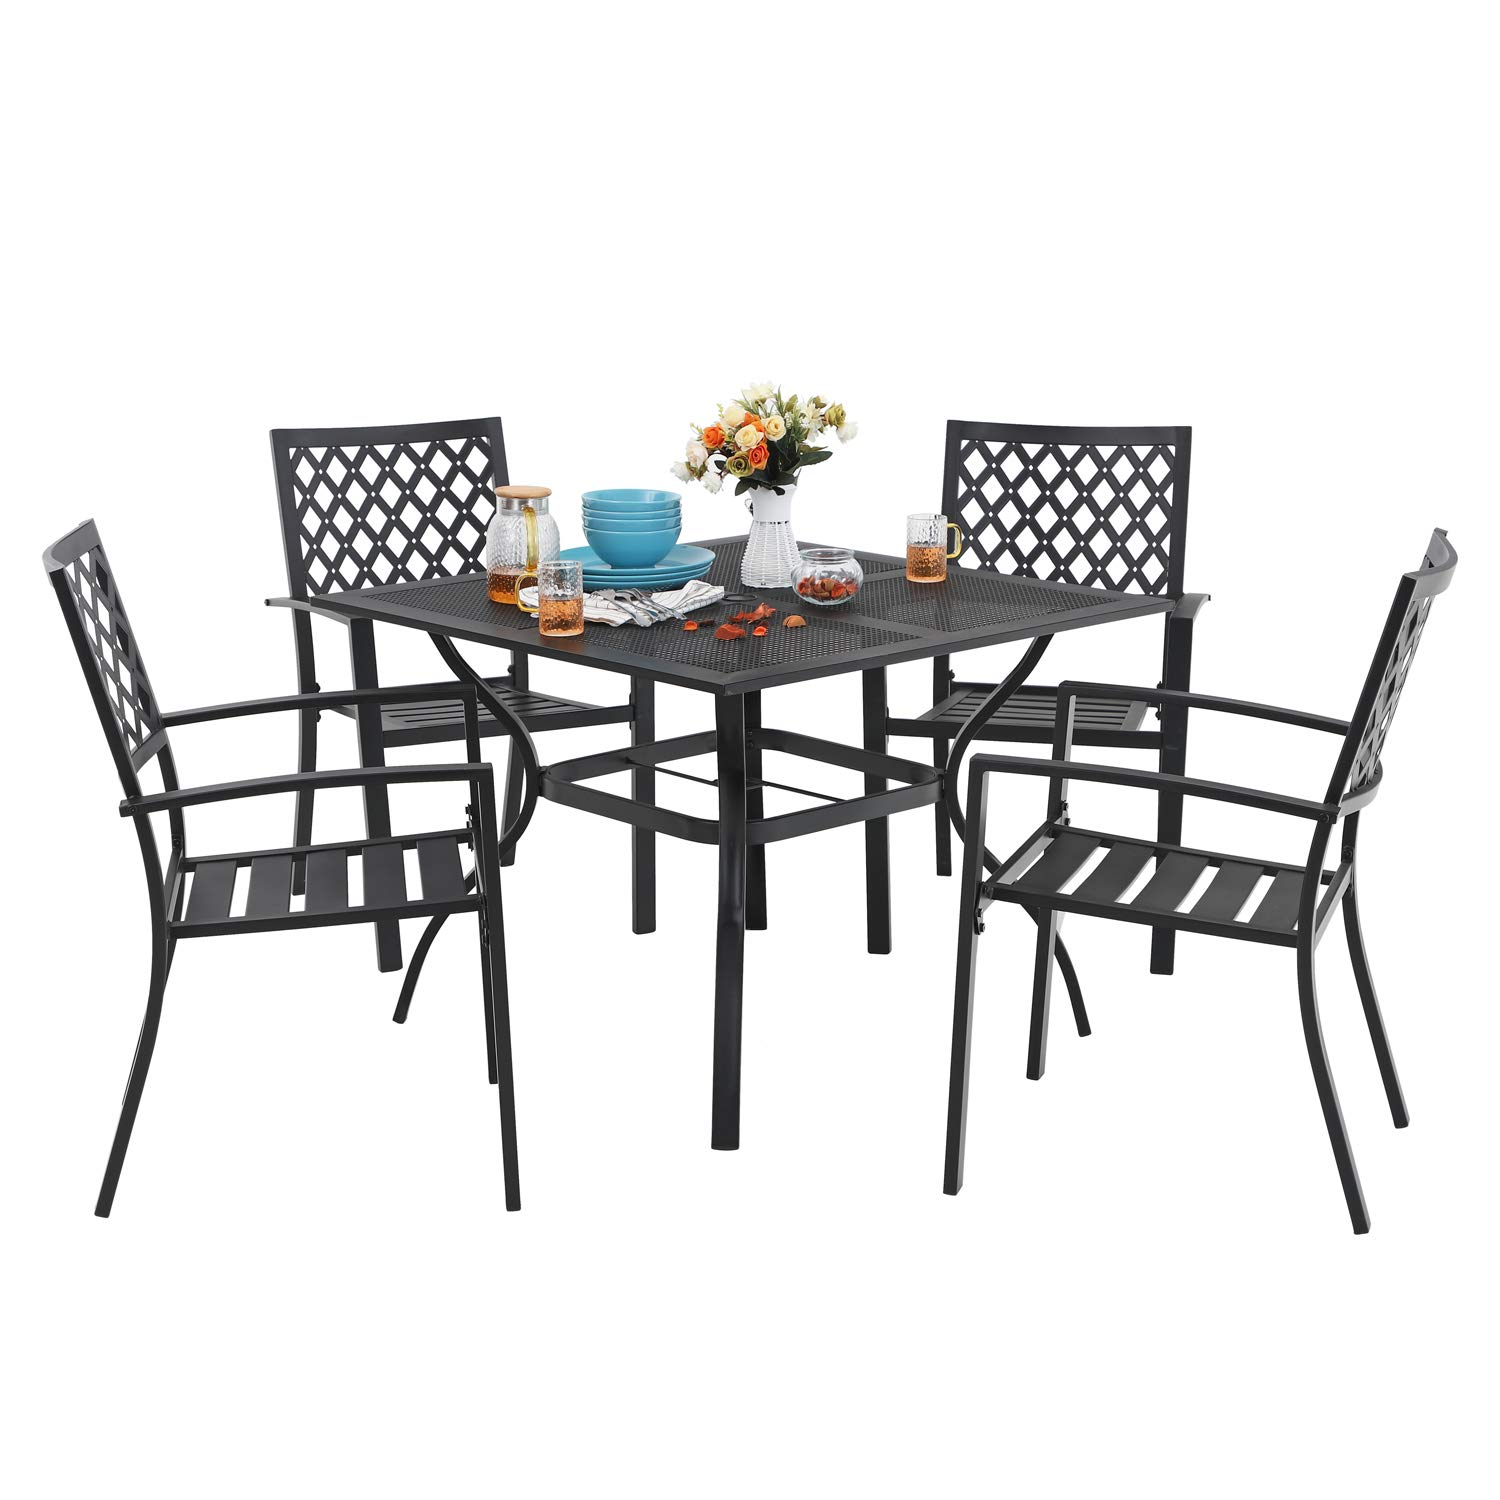 MF 5 Piece Outdoor Patio Metal Dining Sets - 37'' Square Mesh Patio Bistro Table with Umbrella Hole and Armrest Dining Chairs, Black by MF